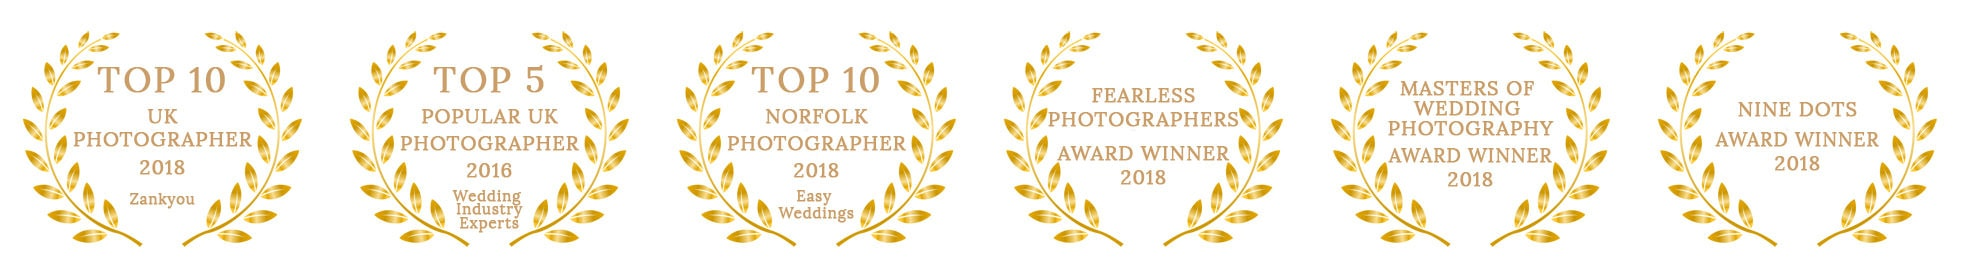 Top 10 Wedding Photographer